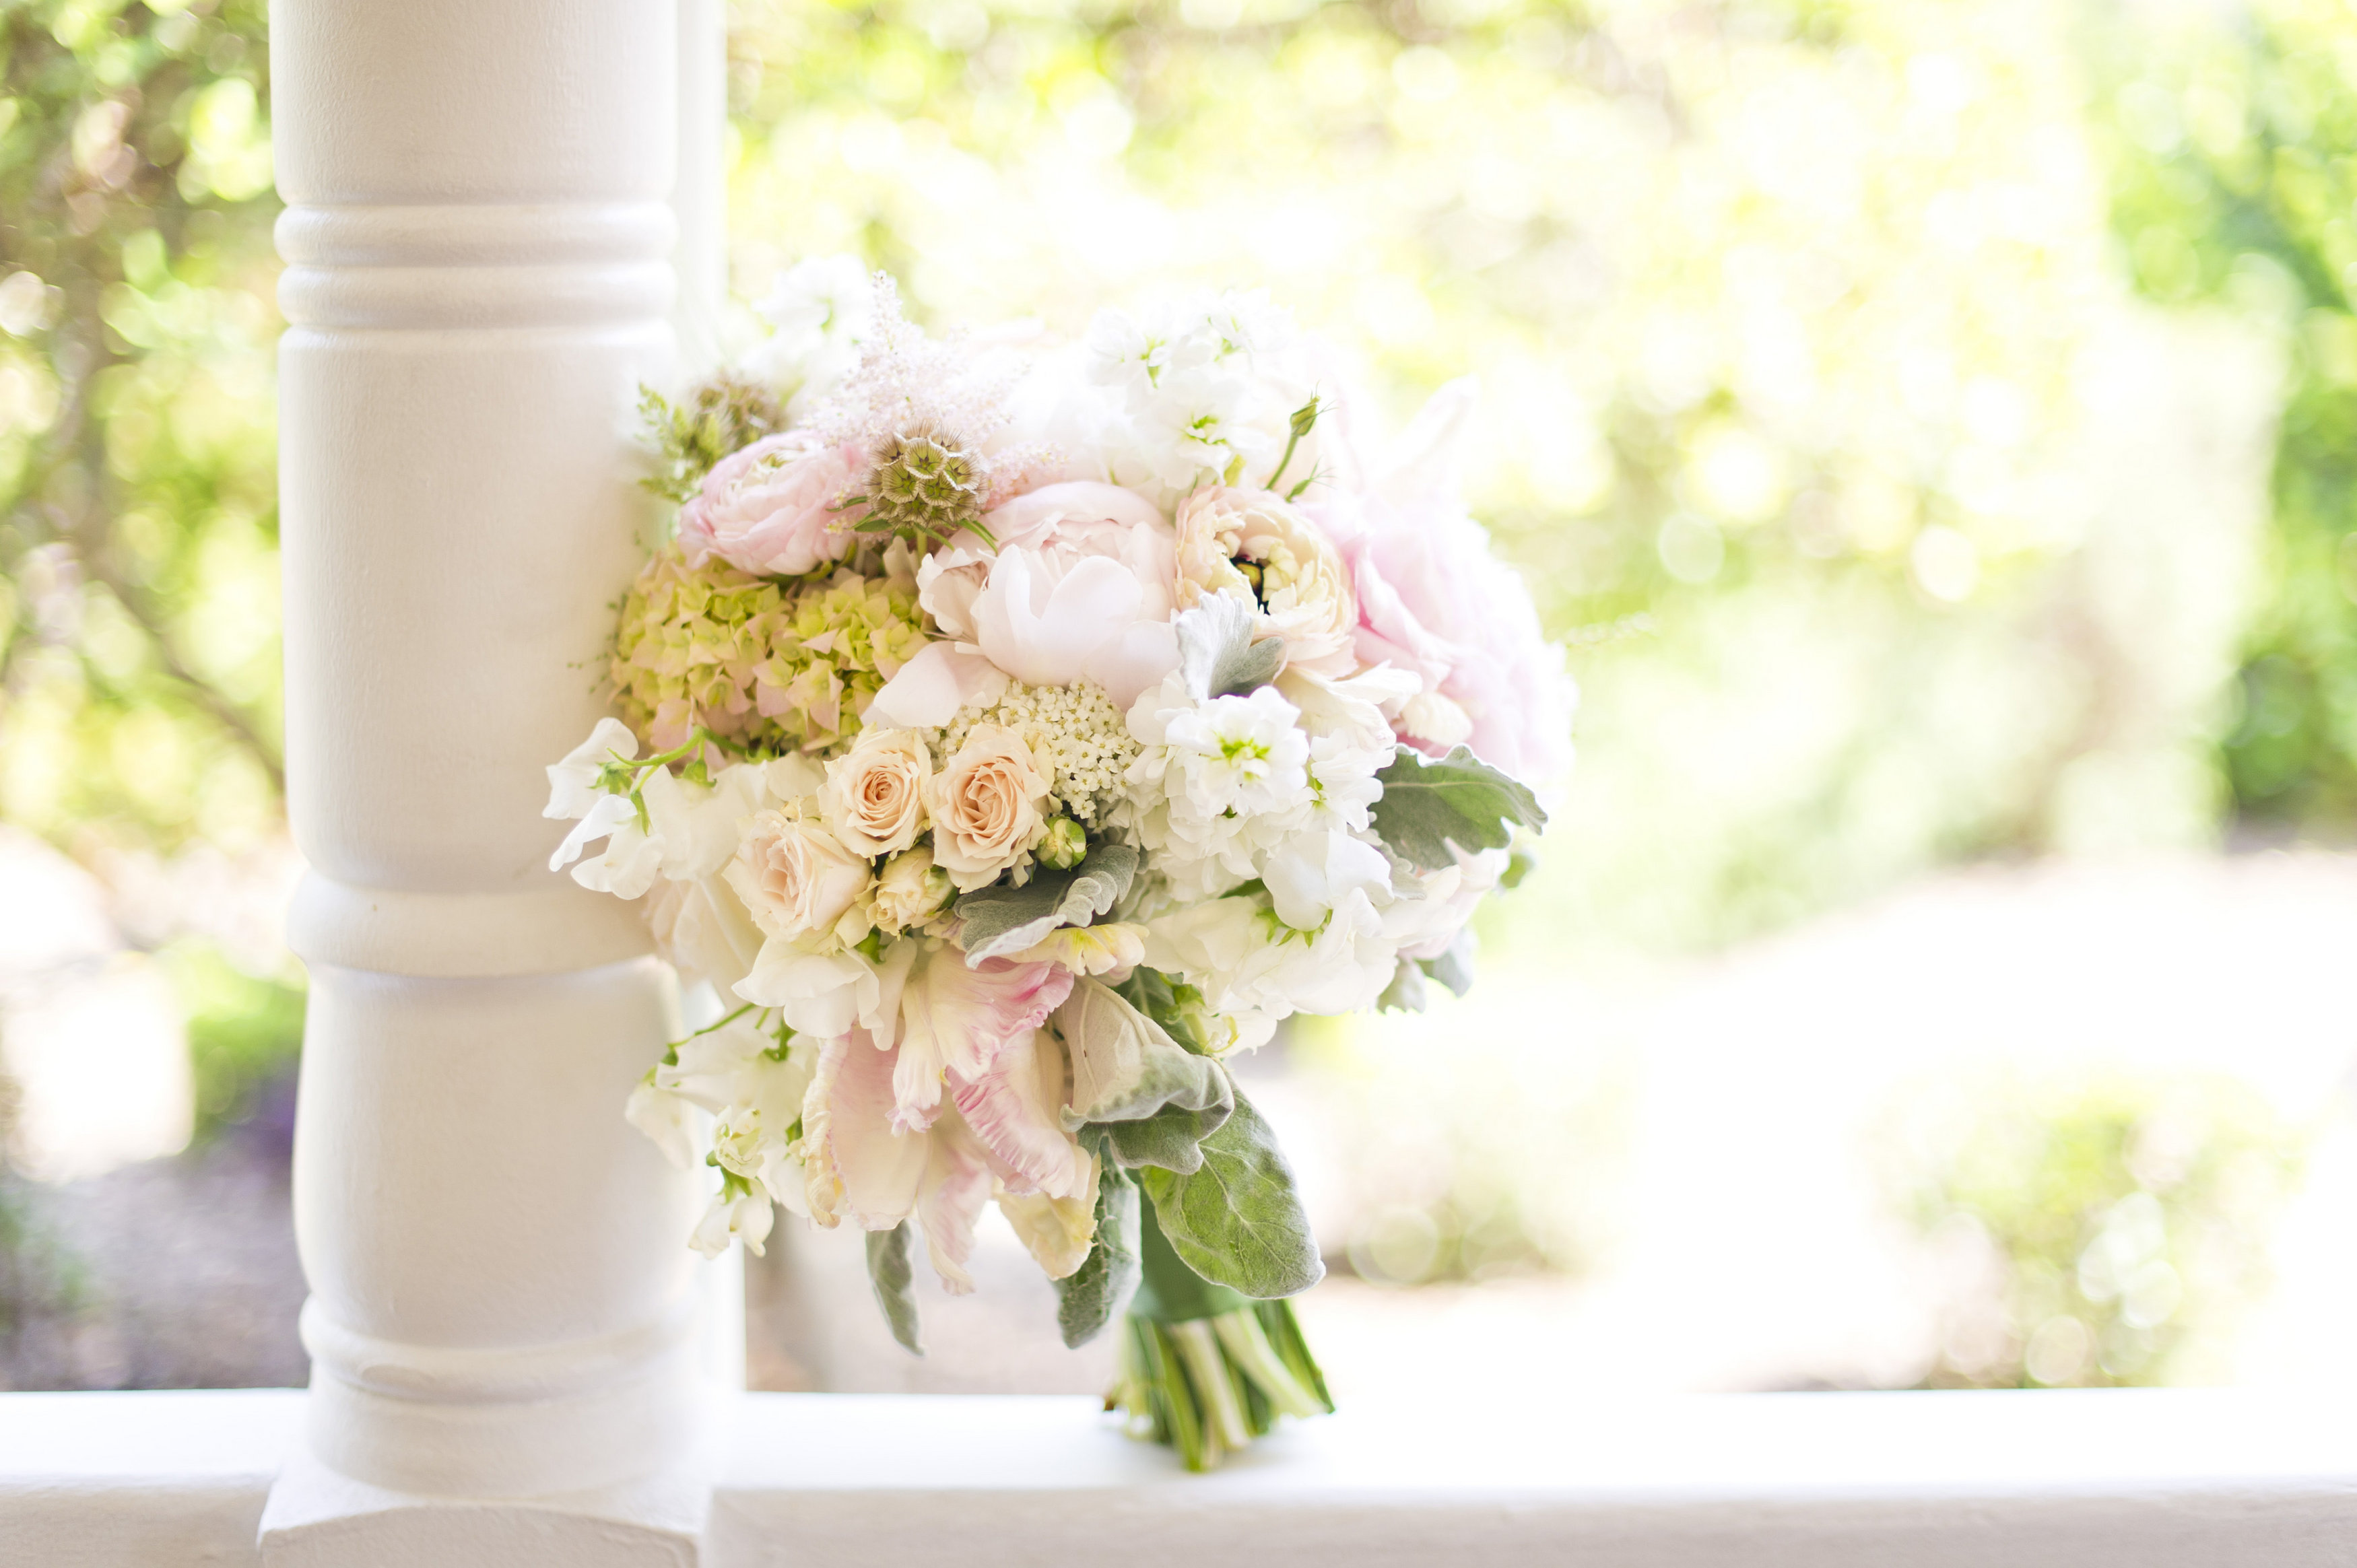 Affordable Wedding Flowers Dallas Tx : What are customers saying dallas and fort worth